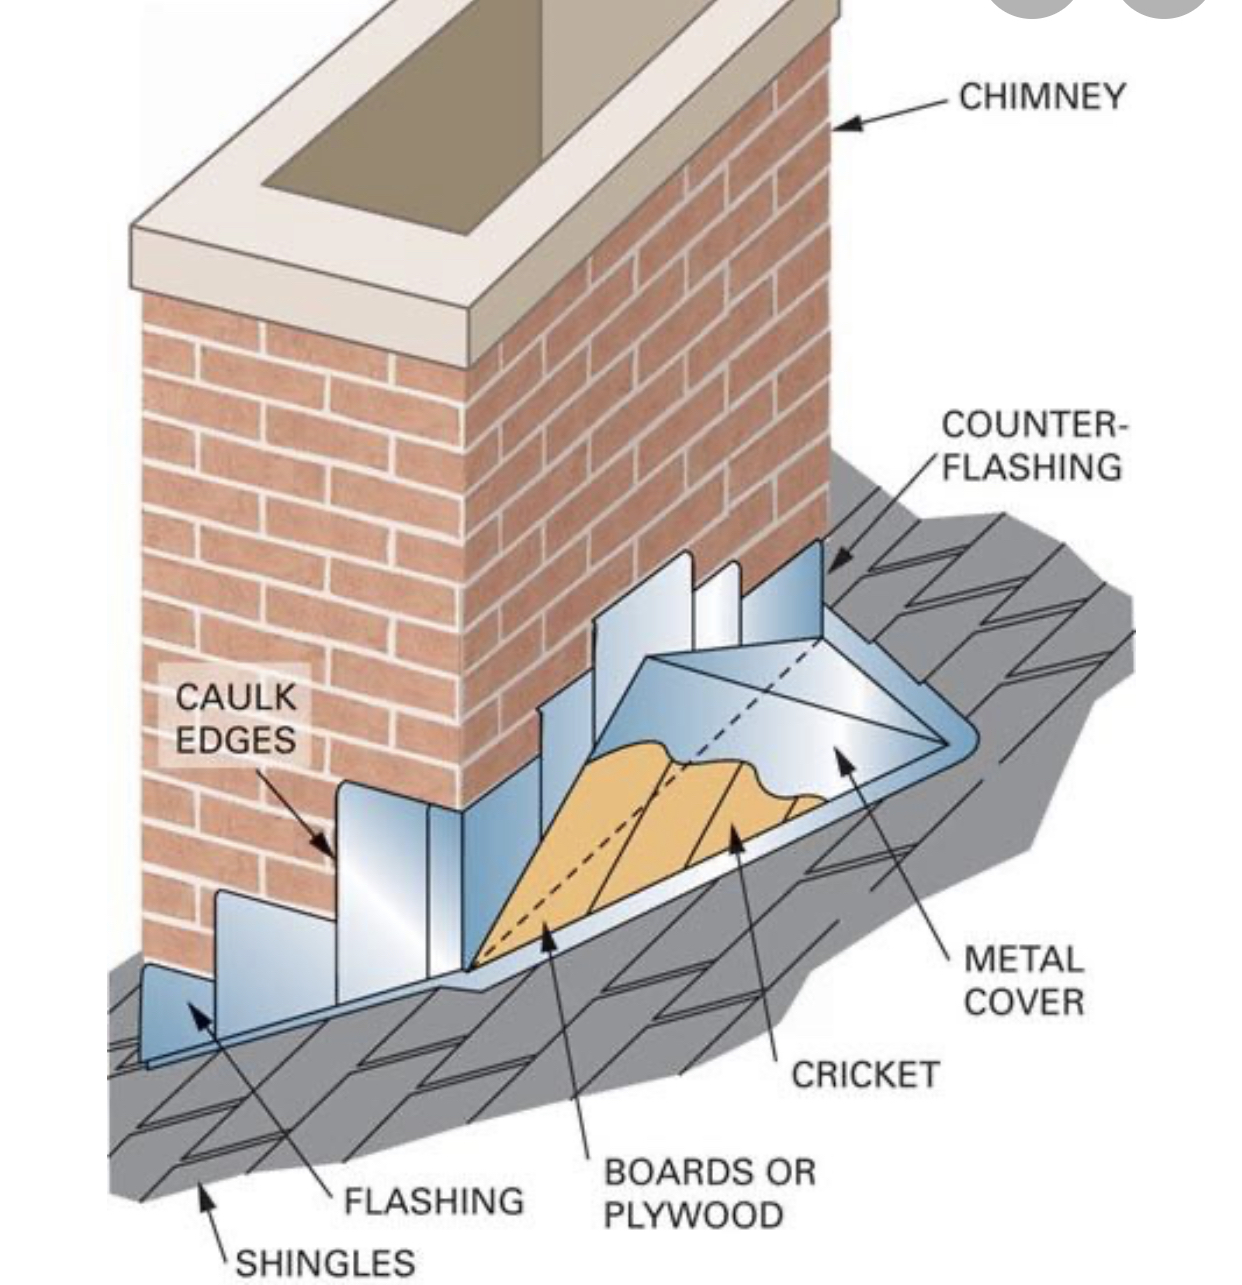 Here is a diagram of the proper method for flashing or re-flashing a chimney